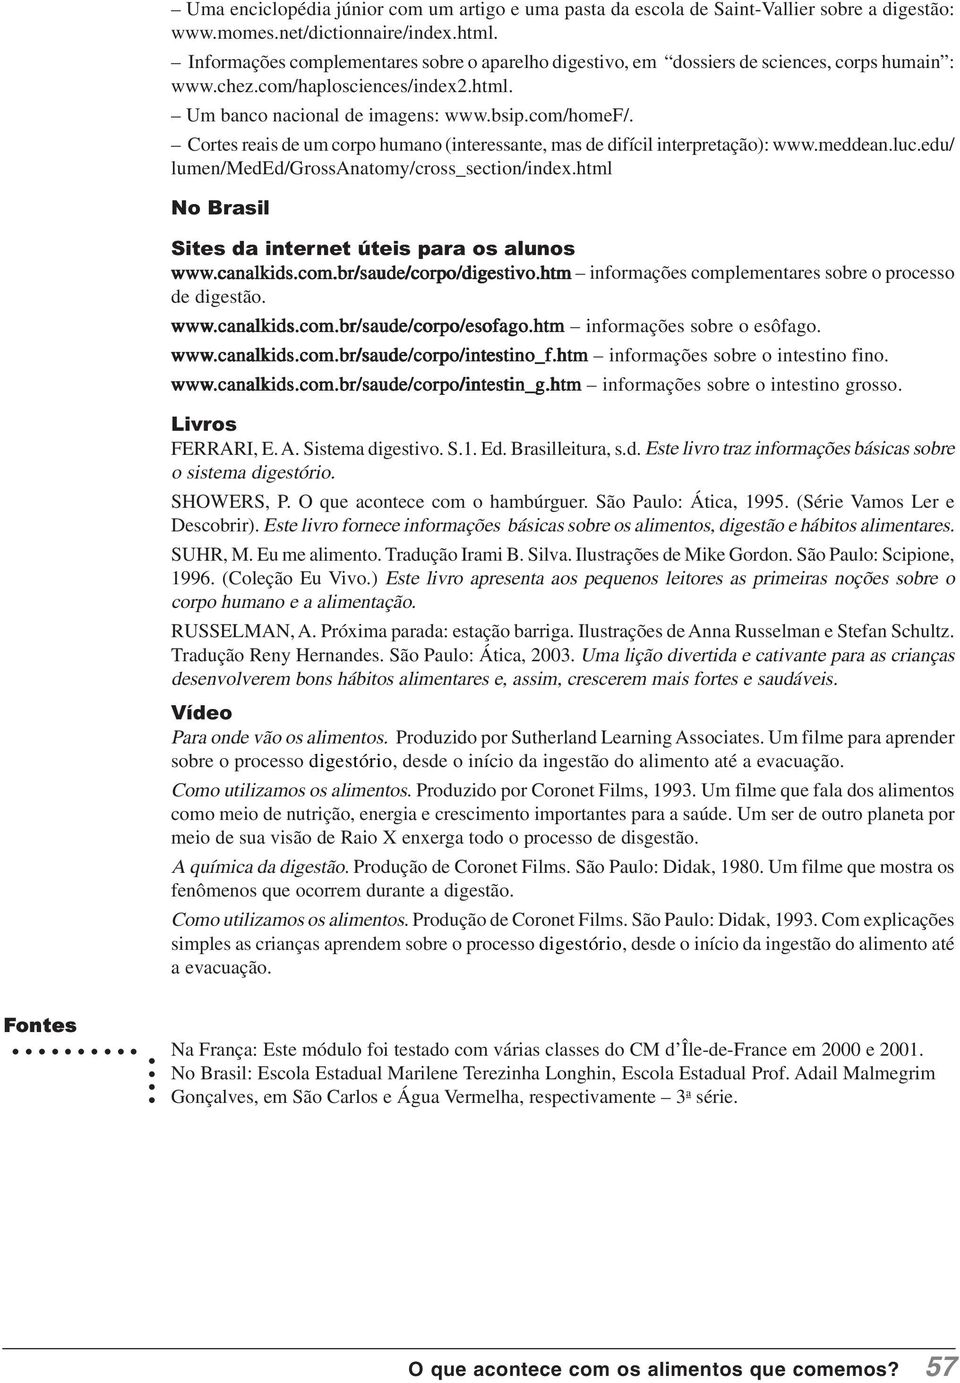 Cortes reais de um corpo humano (interessante, mas de difícil interpretação): www.meddean.luc.edu/ lumen/meded/grossanatomy/cross_section/index.